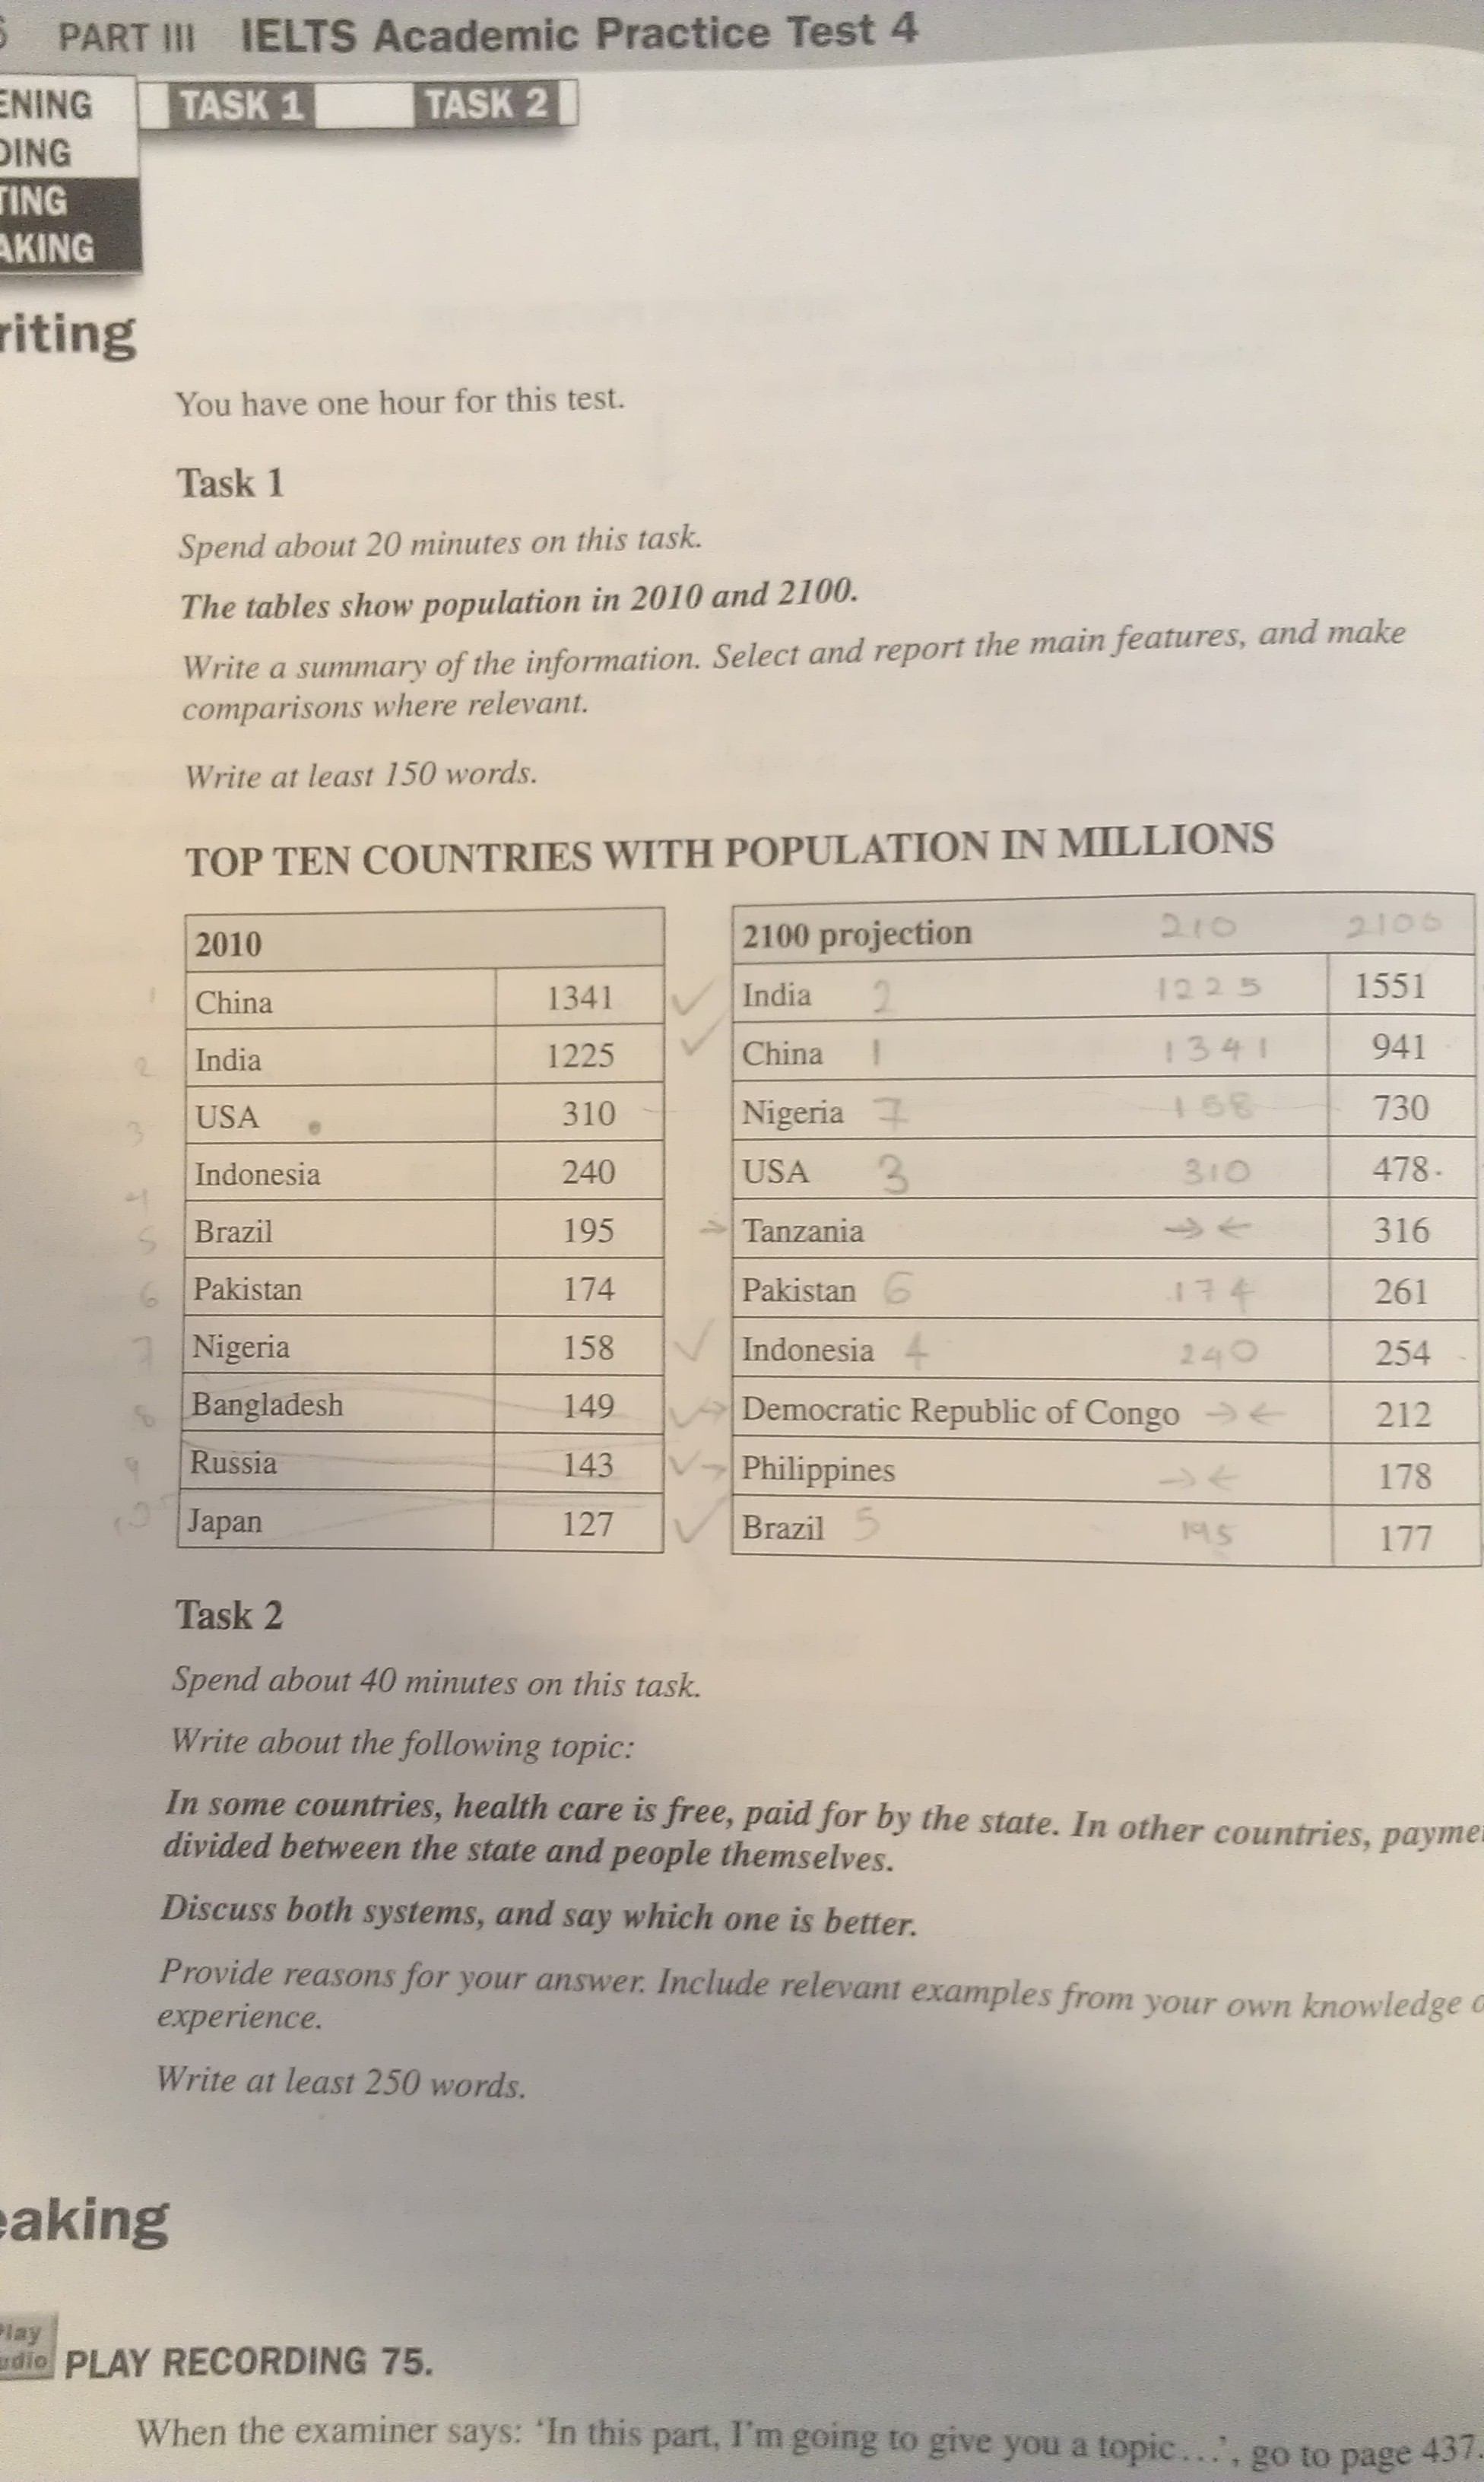 the table illustrates the population size of major countries in essay topics the table illustrates the population size of 10 major countries in the year 2010 and 2100 the figures demonstrate a clear increase in